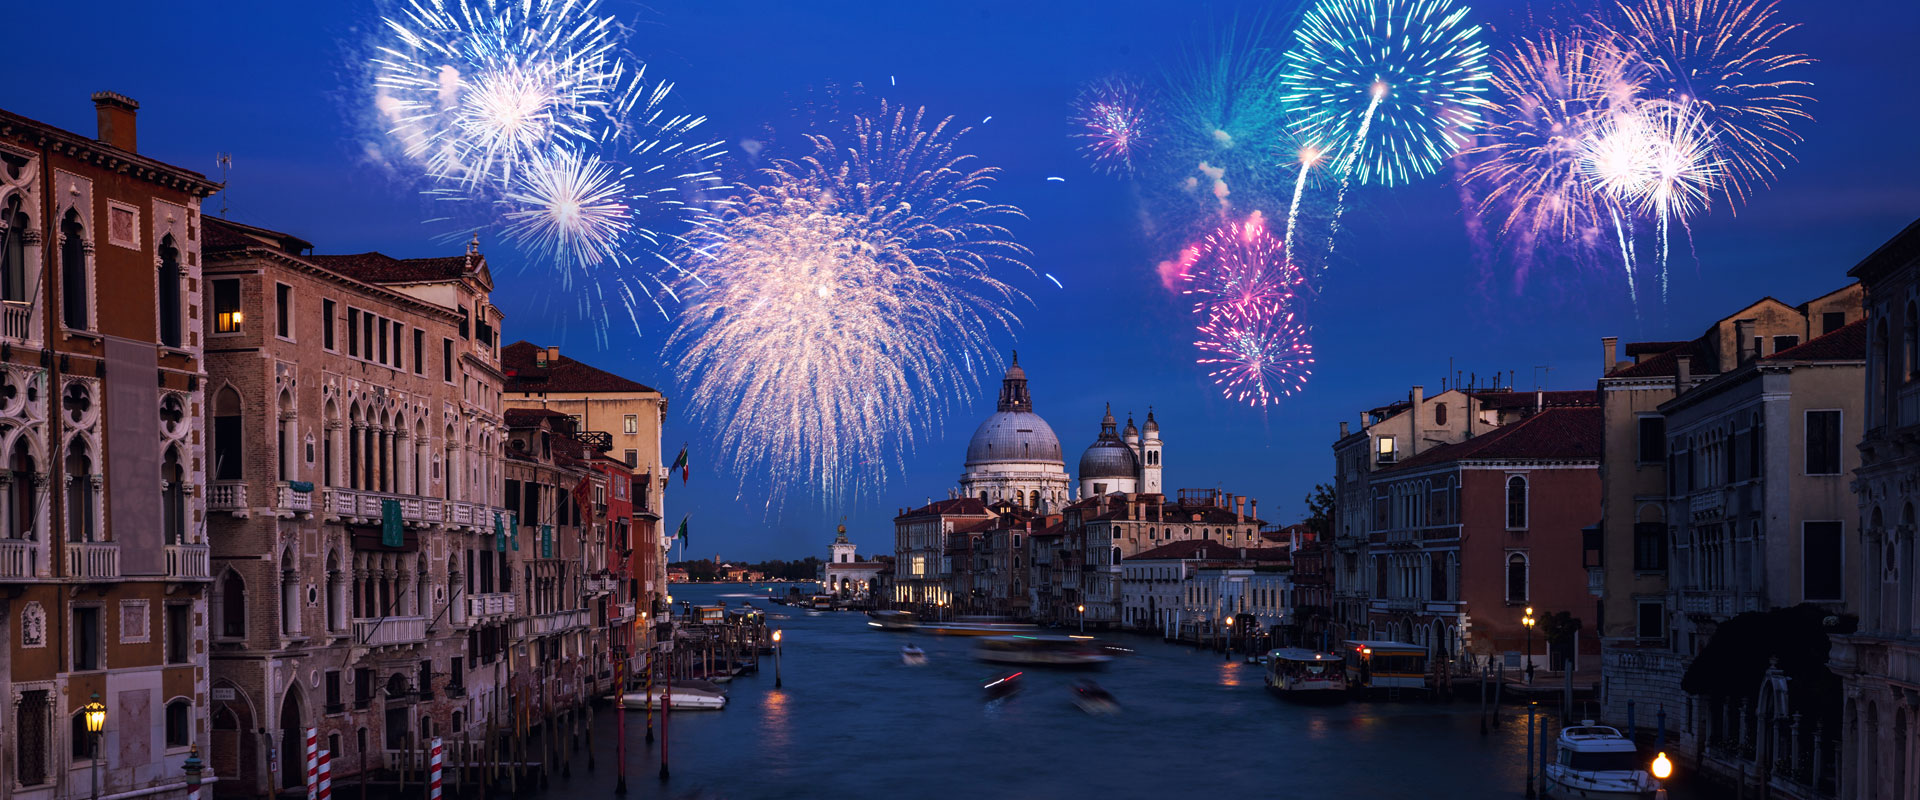 New Year In Venice from 29/12 to 01/01